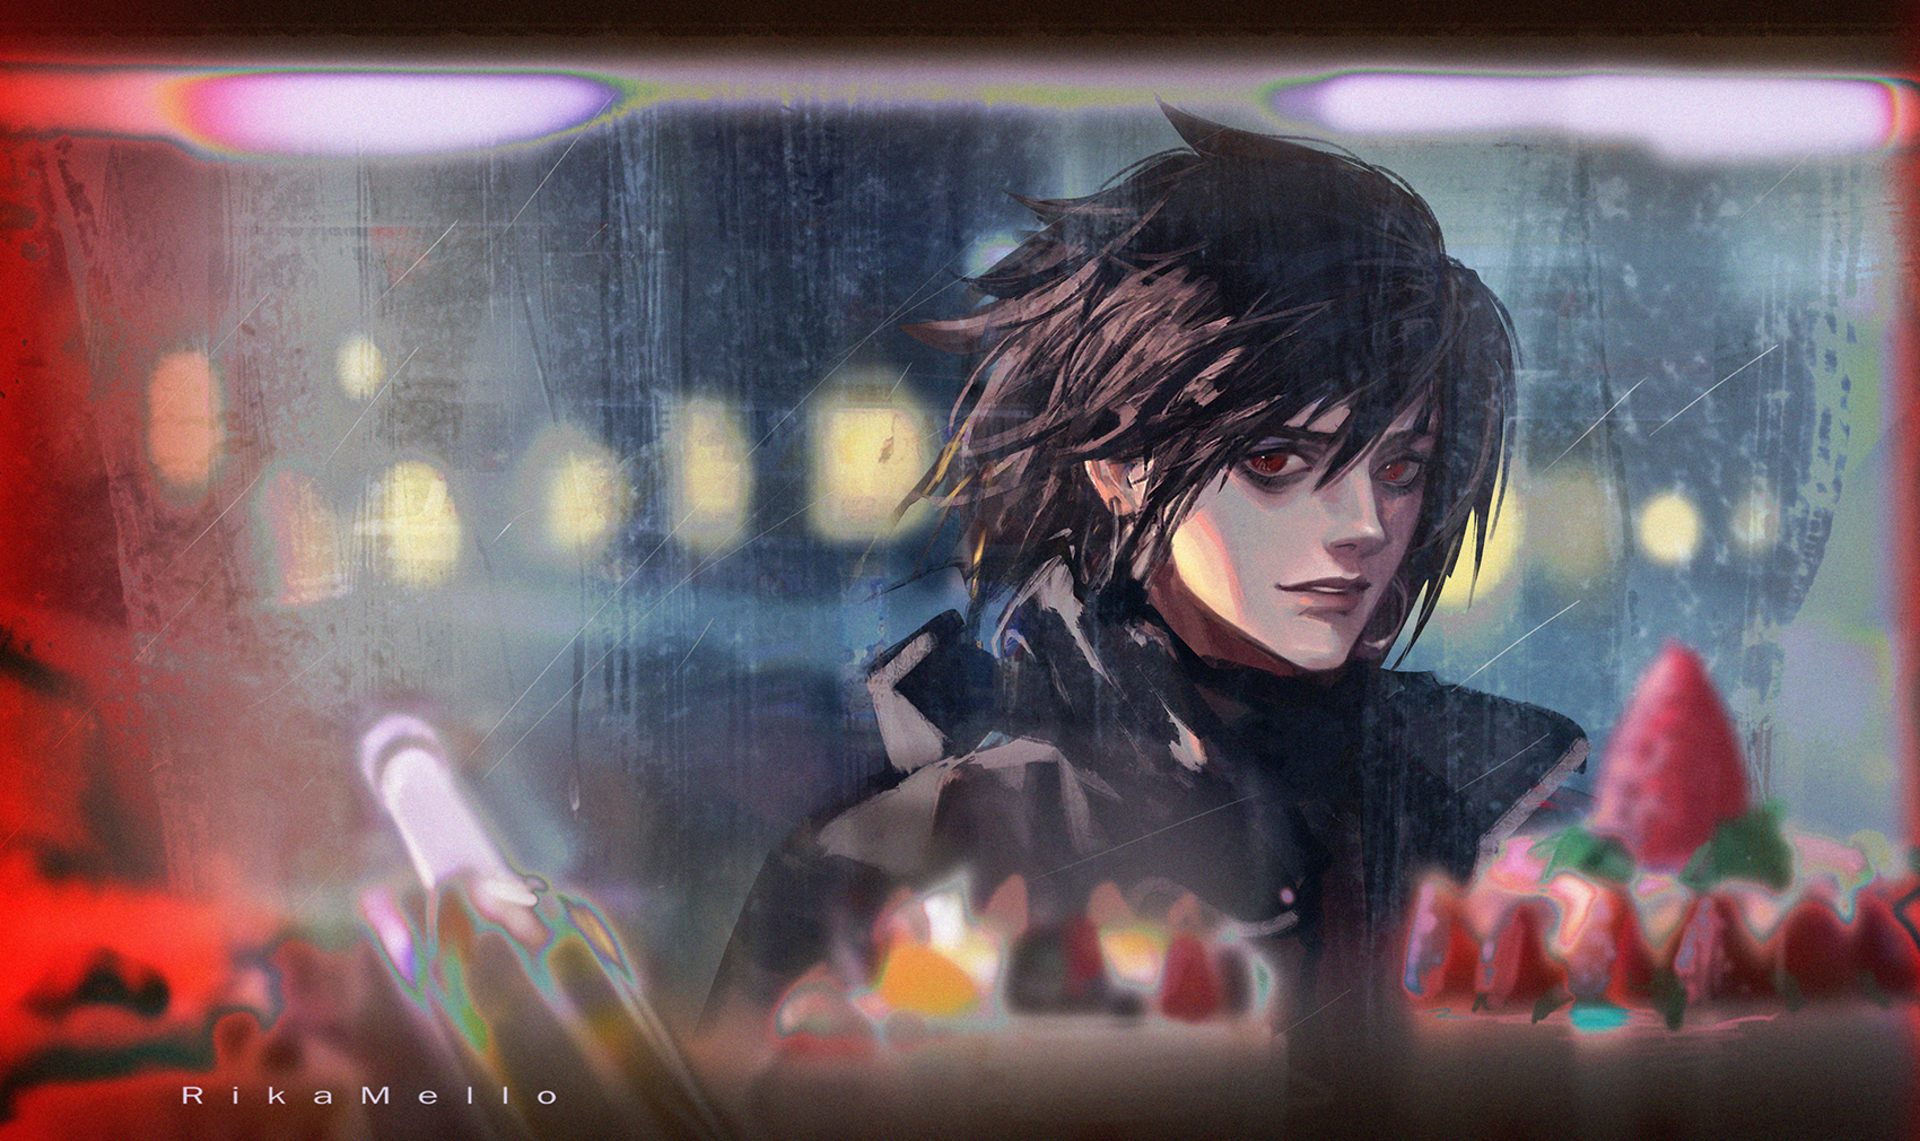 death note wallpaper,cg artwork,anime,black hair,games,graphics